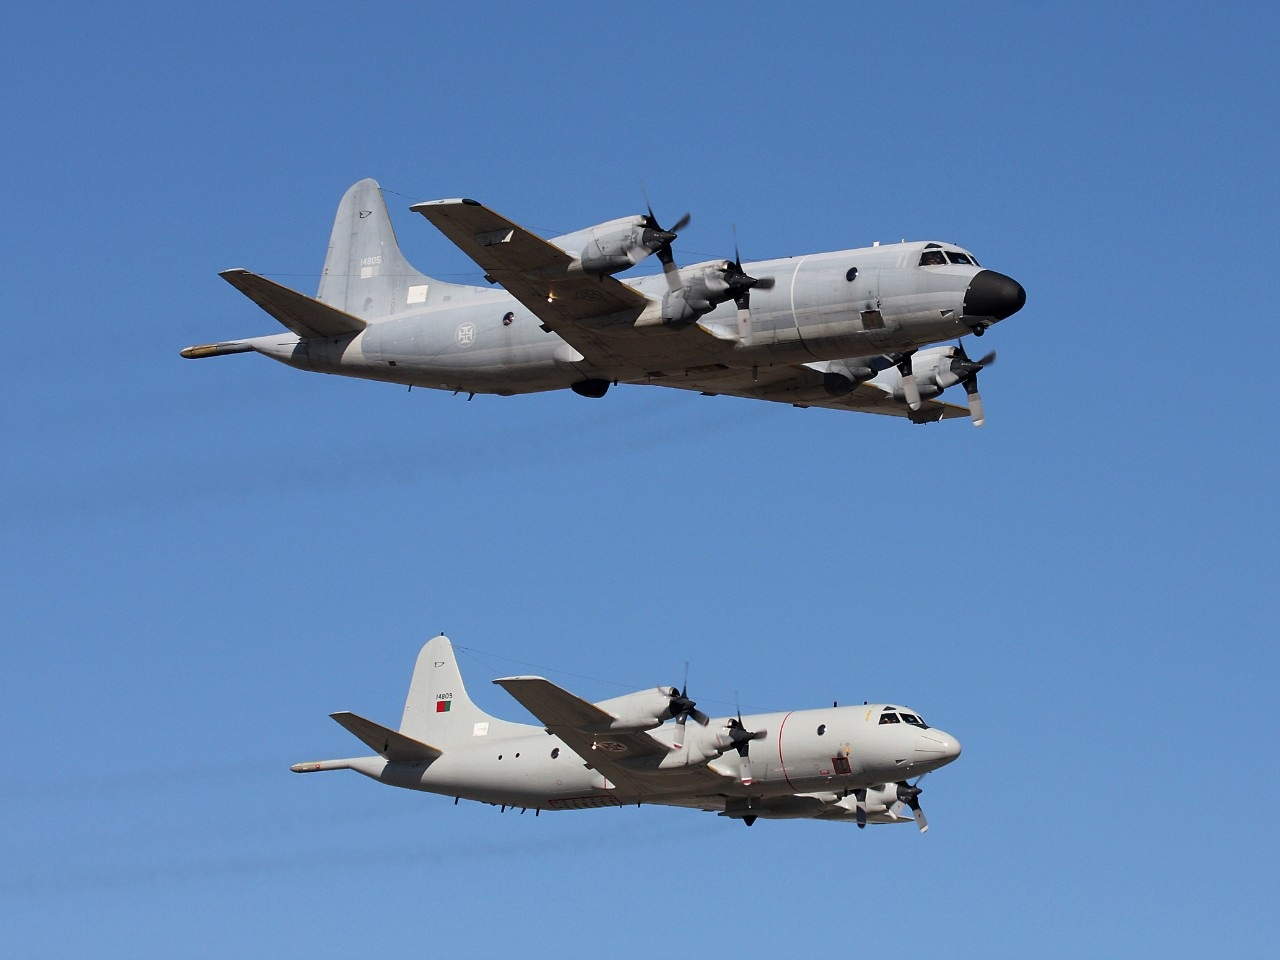 P3 Orion